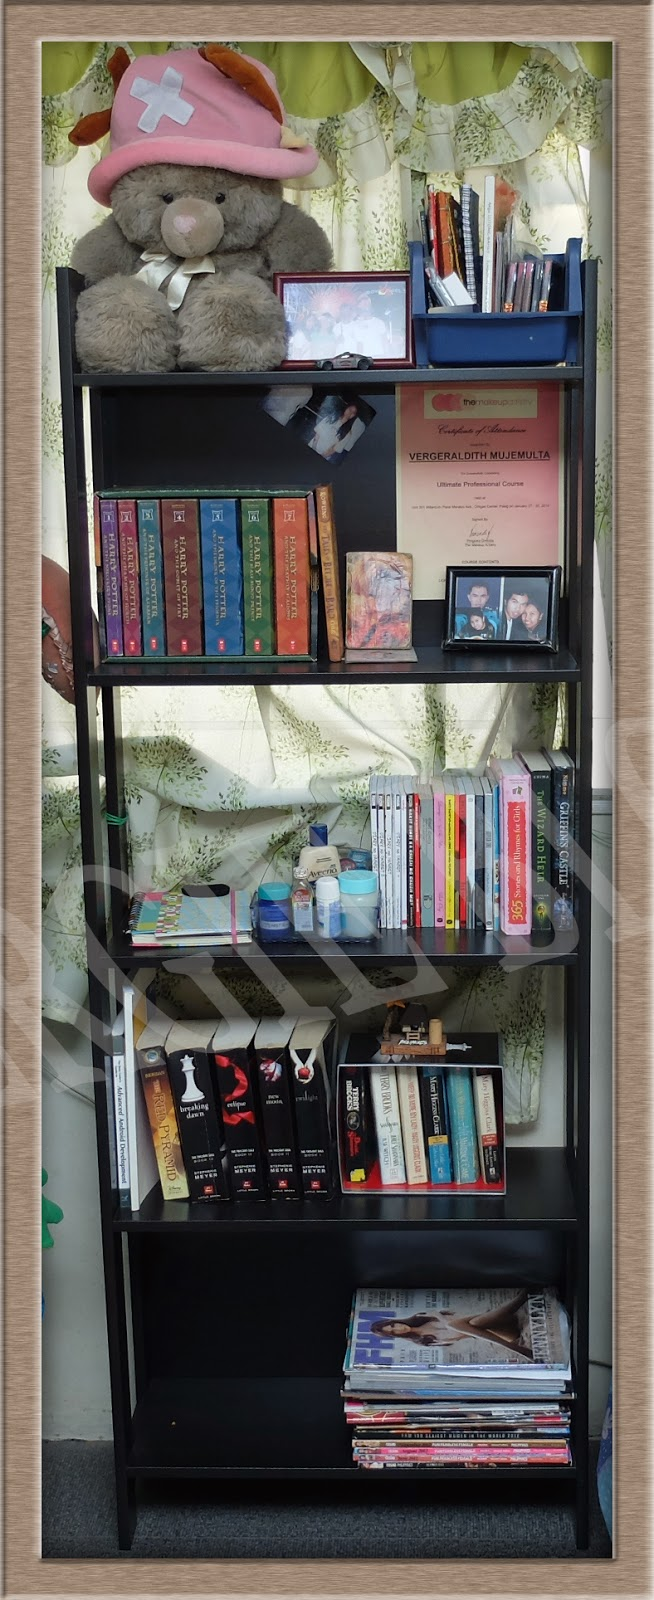 Shipping fee: PHP 500 - Vergie Blogs: IKEA LAIVA Bookcase, A Home For My Books..